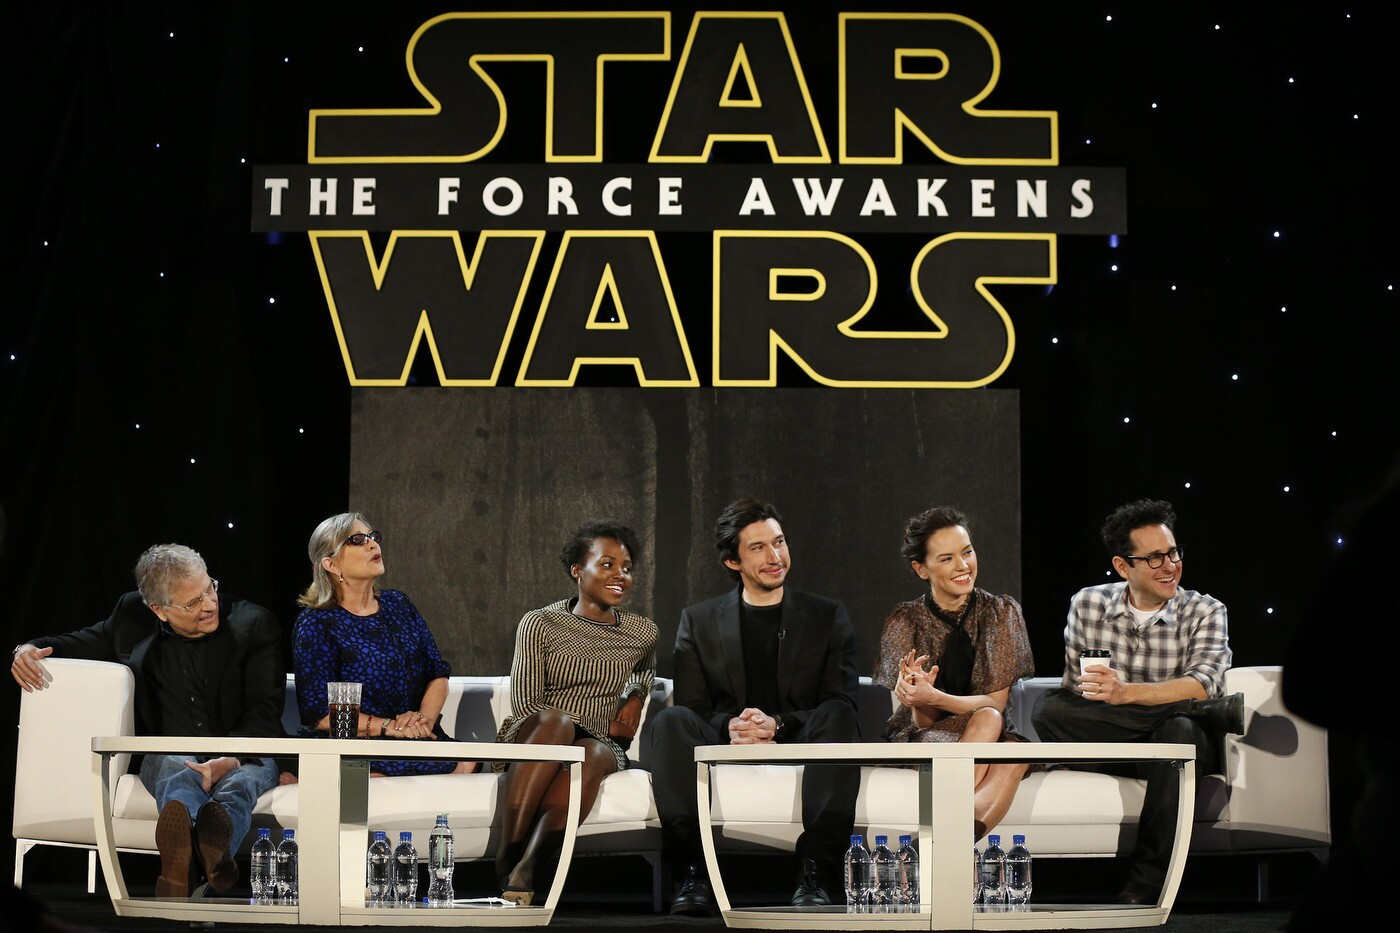 """A press junket in L.A. for """"Star Wars: The Force Awakens"""" features writer Lawrence Kasdan, from left, Carrie Fisher, Lupita Nyong'o, Adam Driver, Daisy Ridley and J.J. Abrams."""